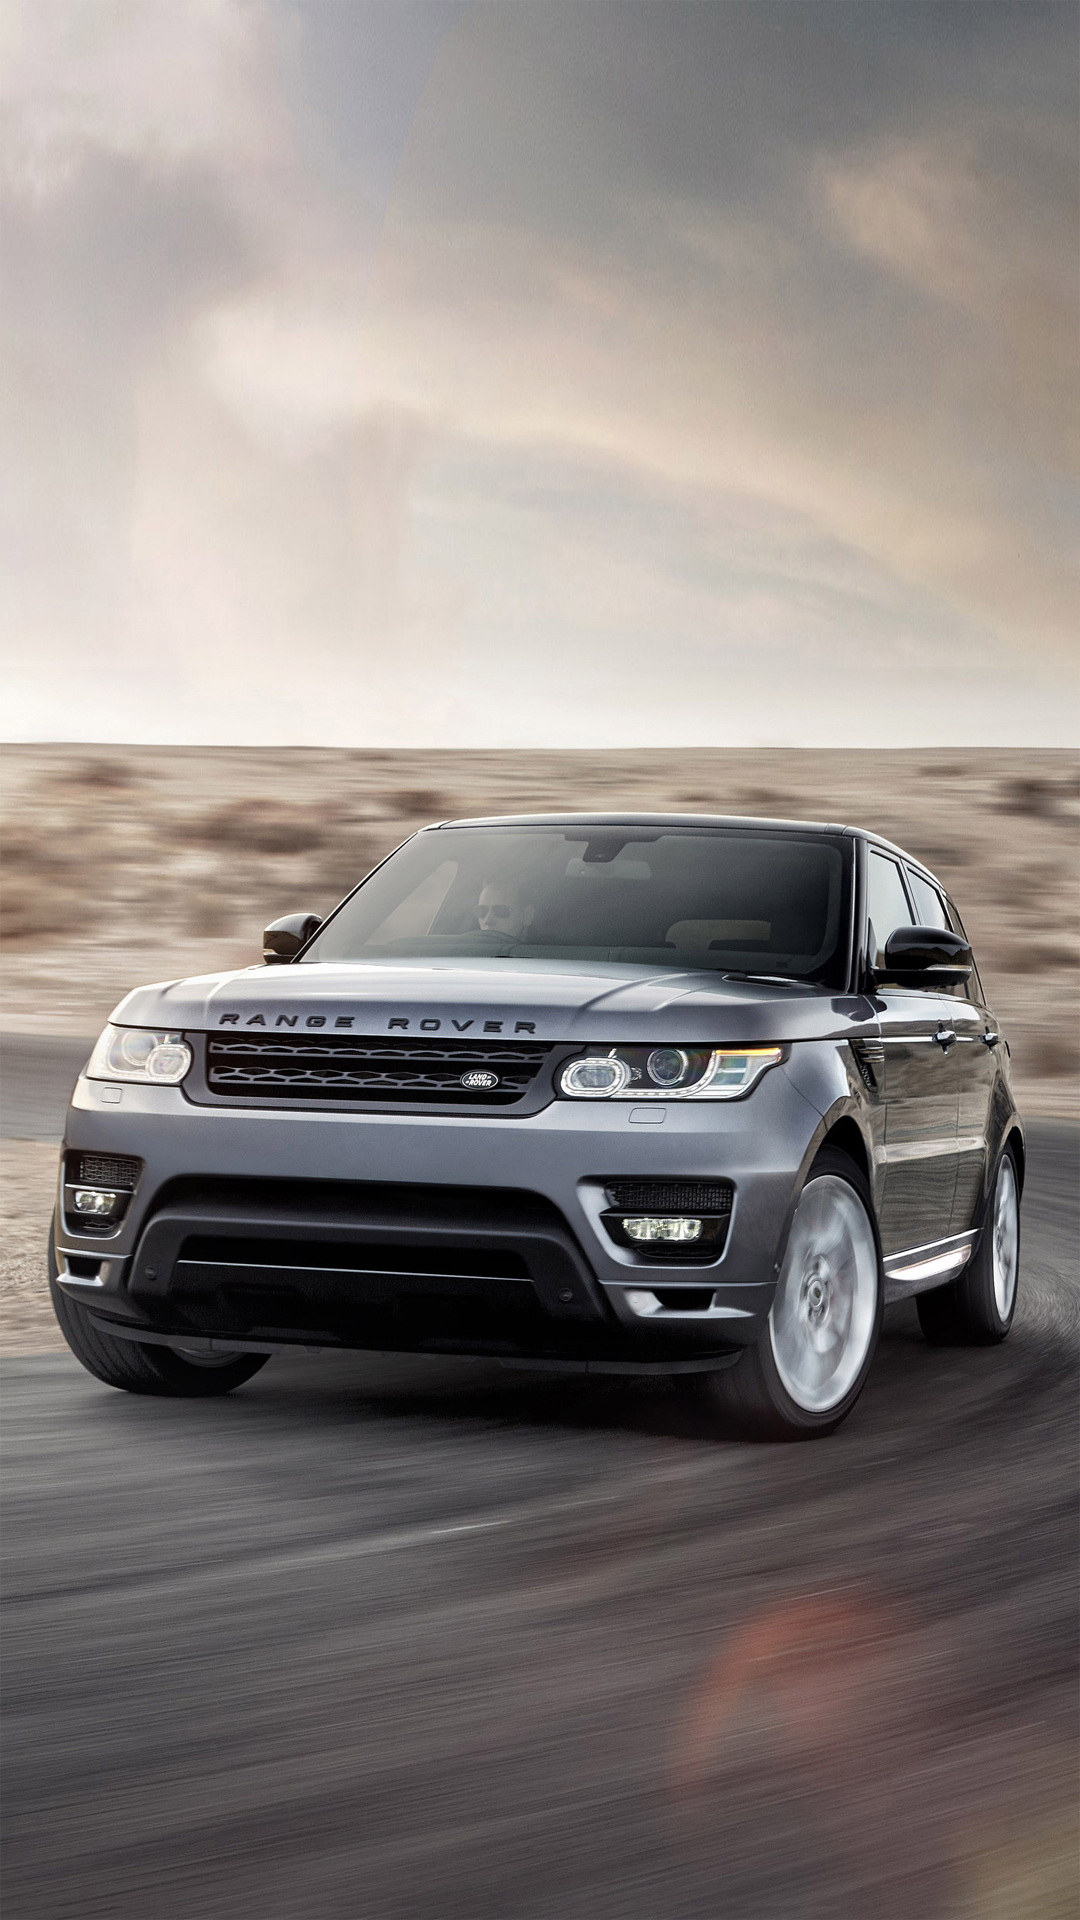 2014 Range Rover Sport Best Htc One Wallpapers Free And